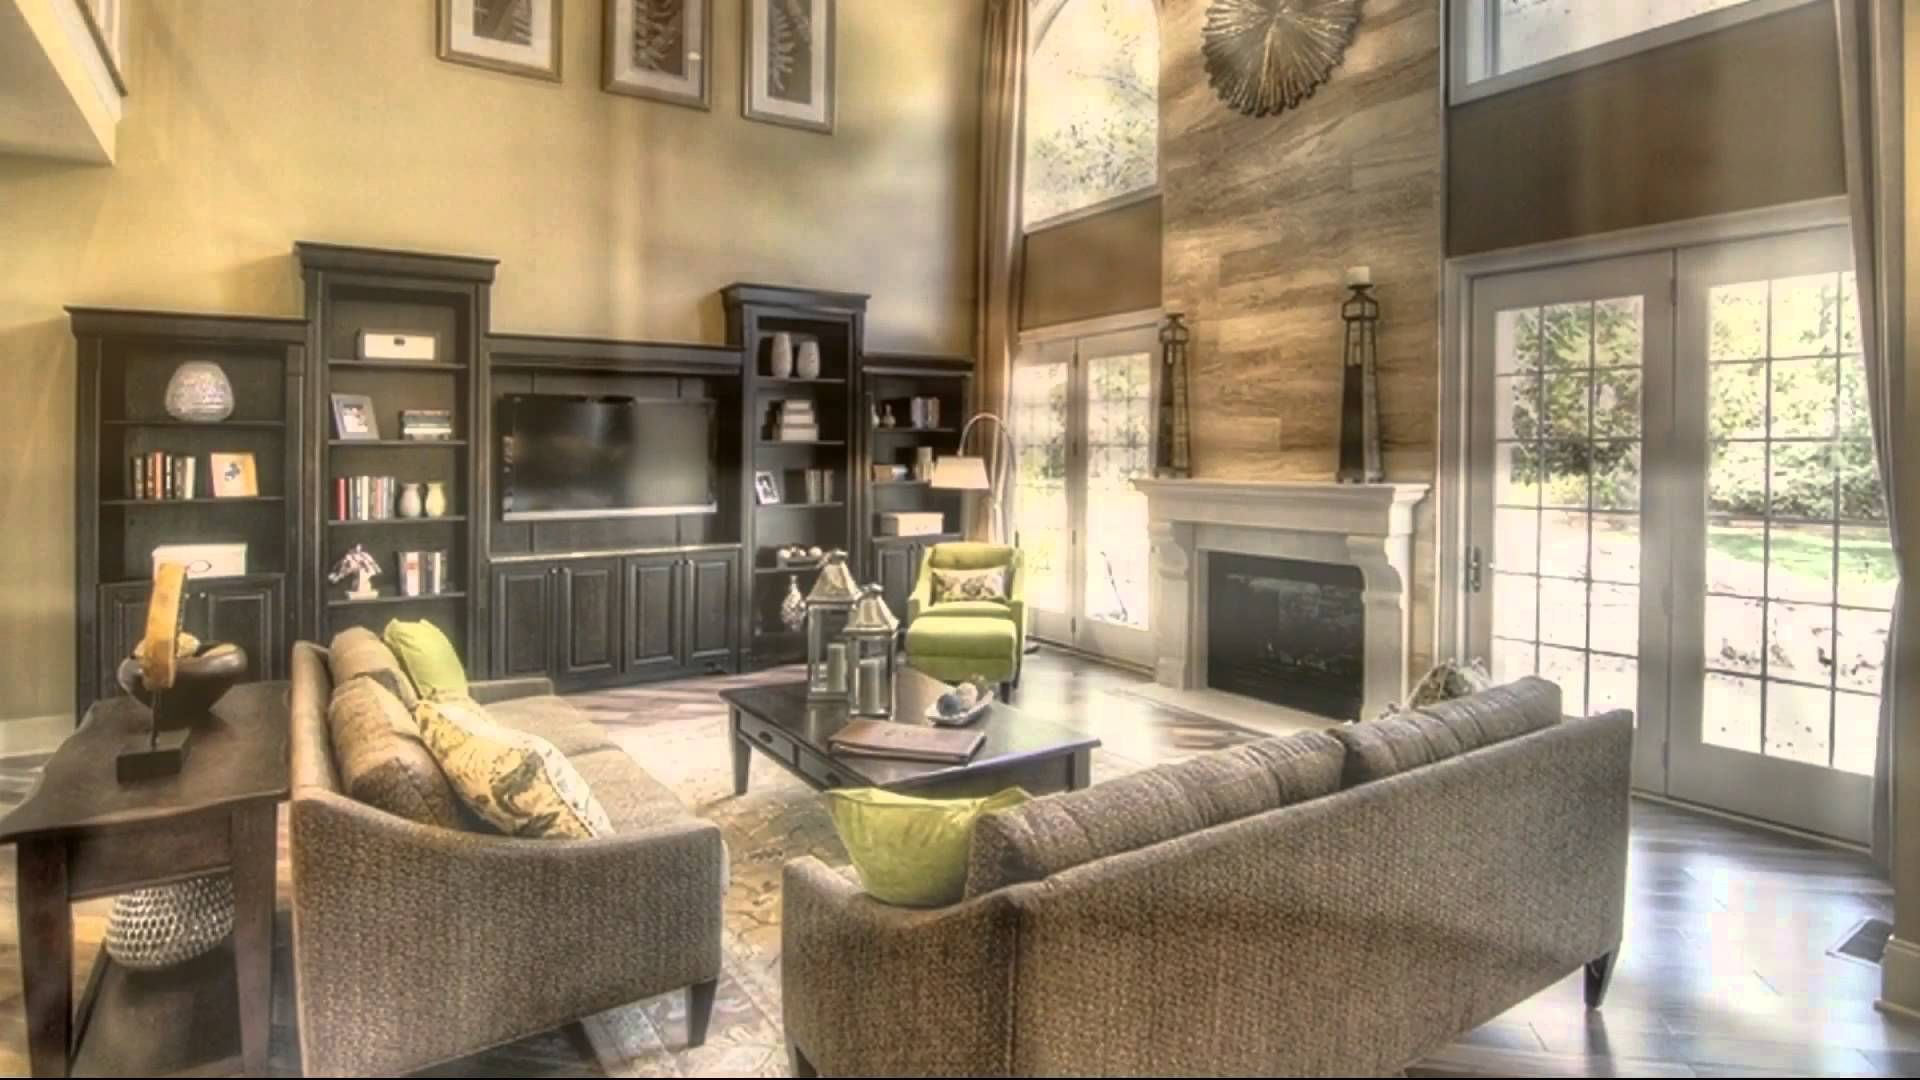 Pin by Jodi Brady on Home inspiration Family room, Home